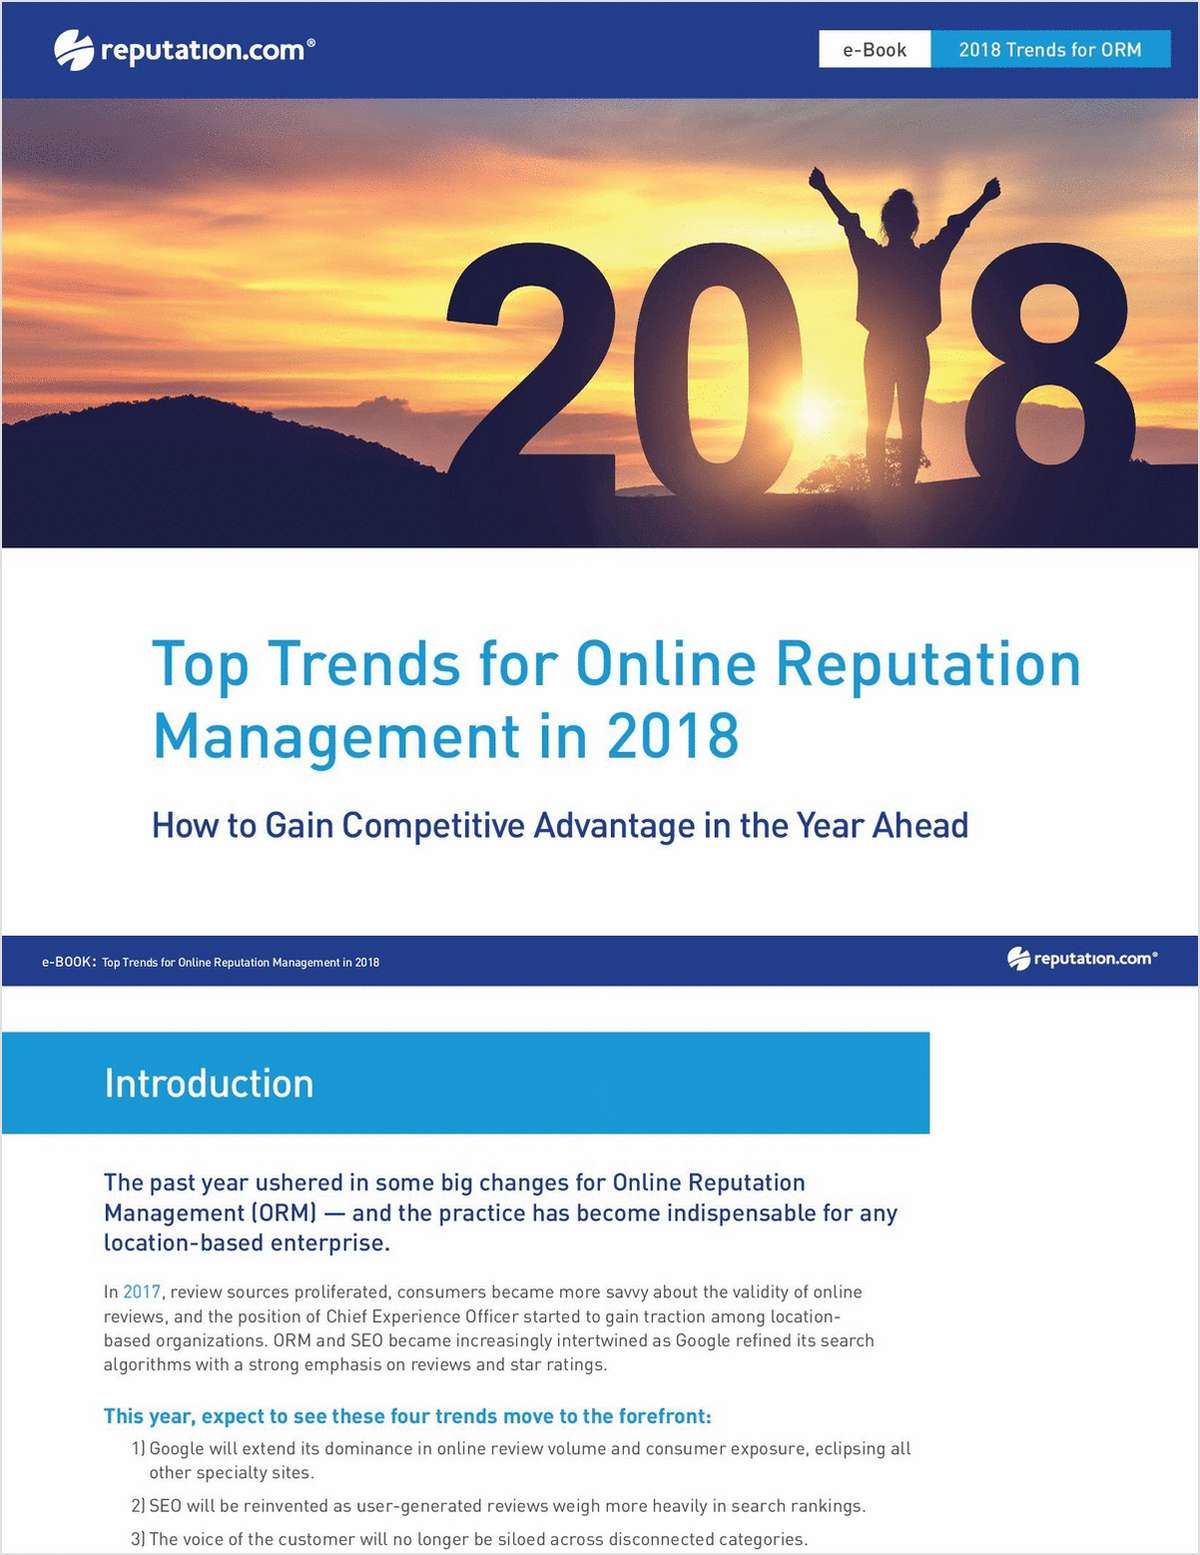 Top Trends for Online Reputation Management